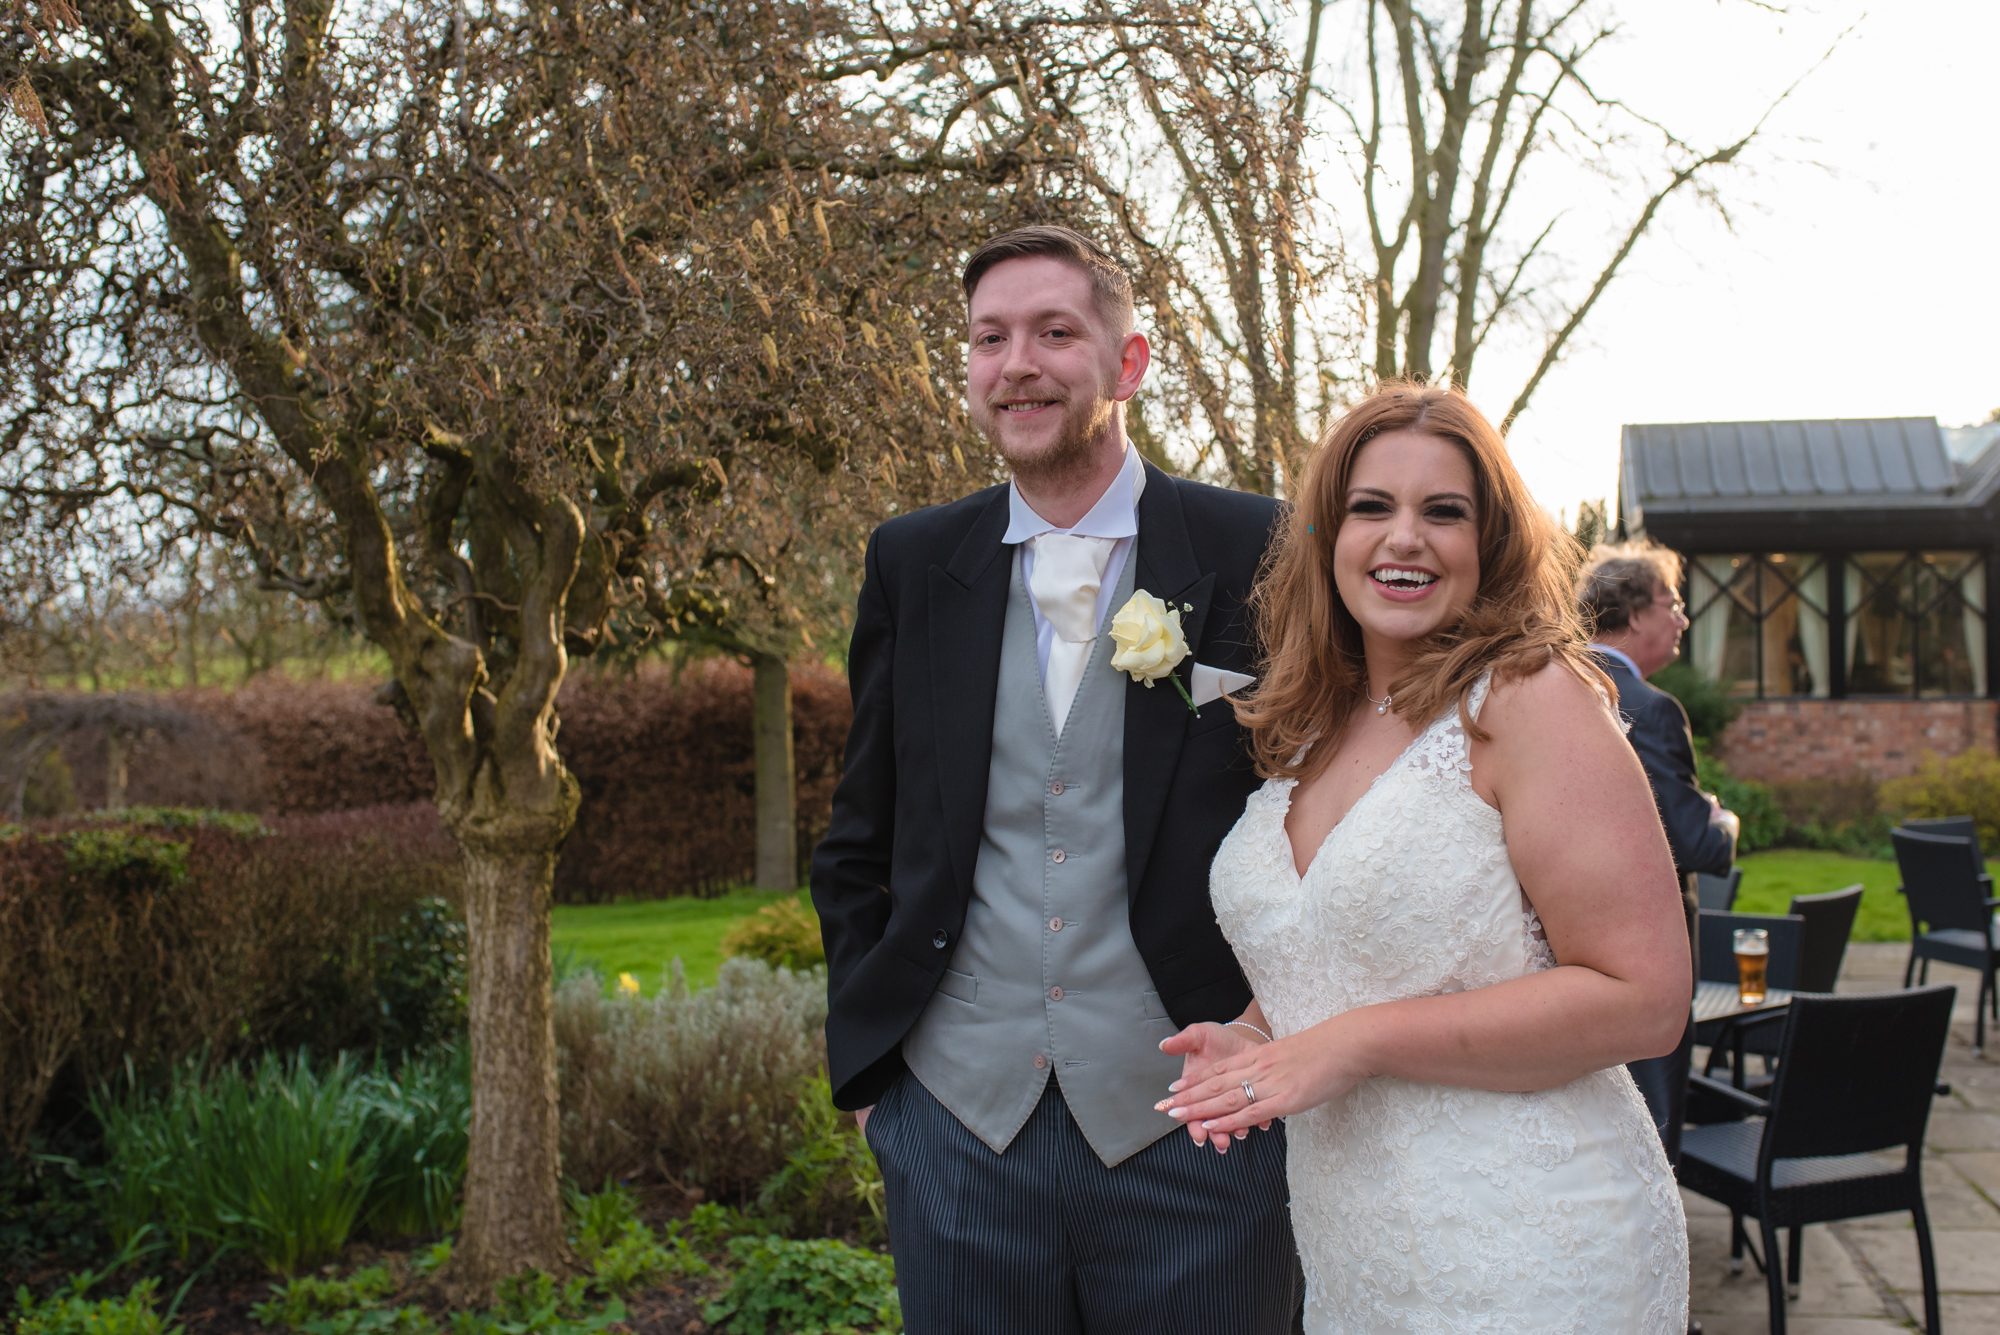 The bride and groom share a casual smile during their Shropshire wedding photography.